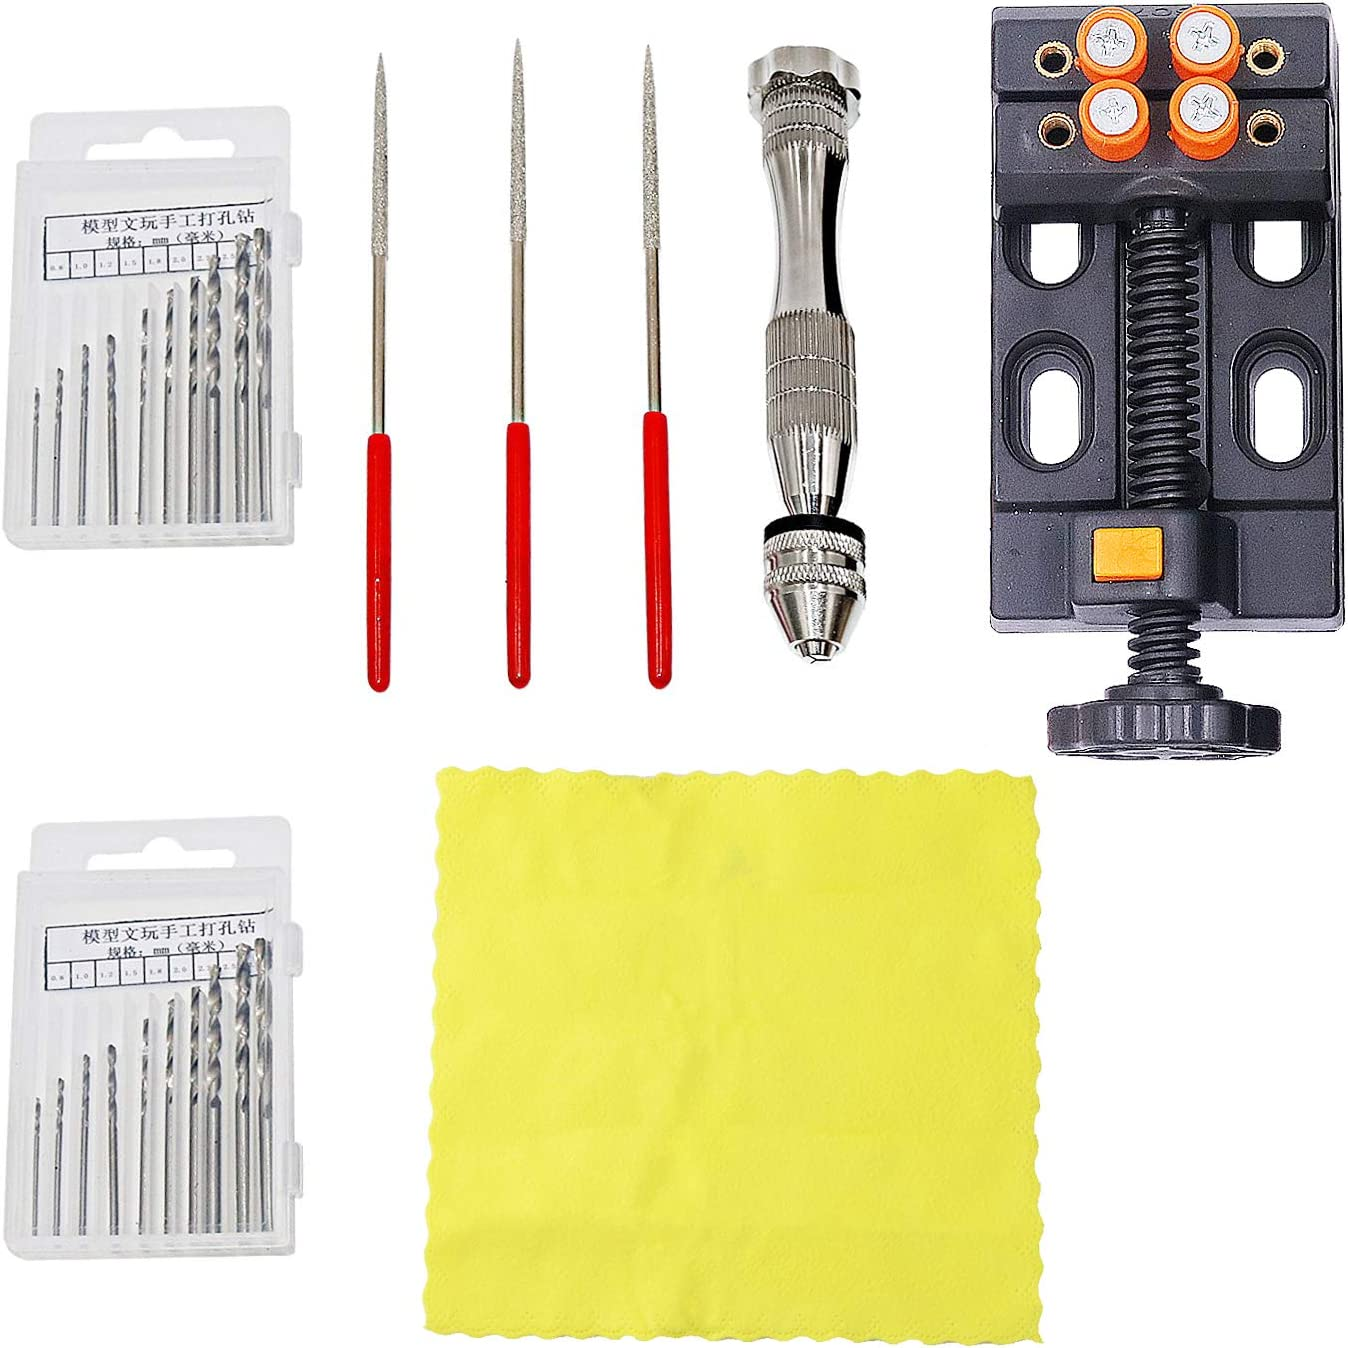 for Home DIY Drilling Holes Bicaquu Made of High Speed Steel Material Impact Drill, Drilling Hole Tool